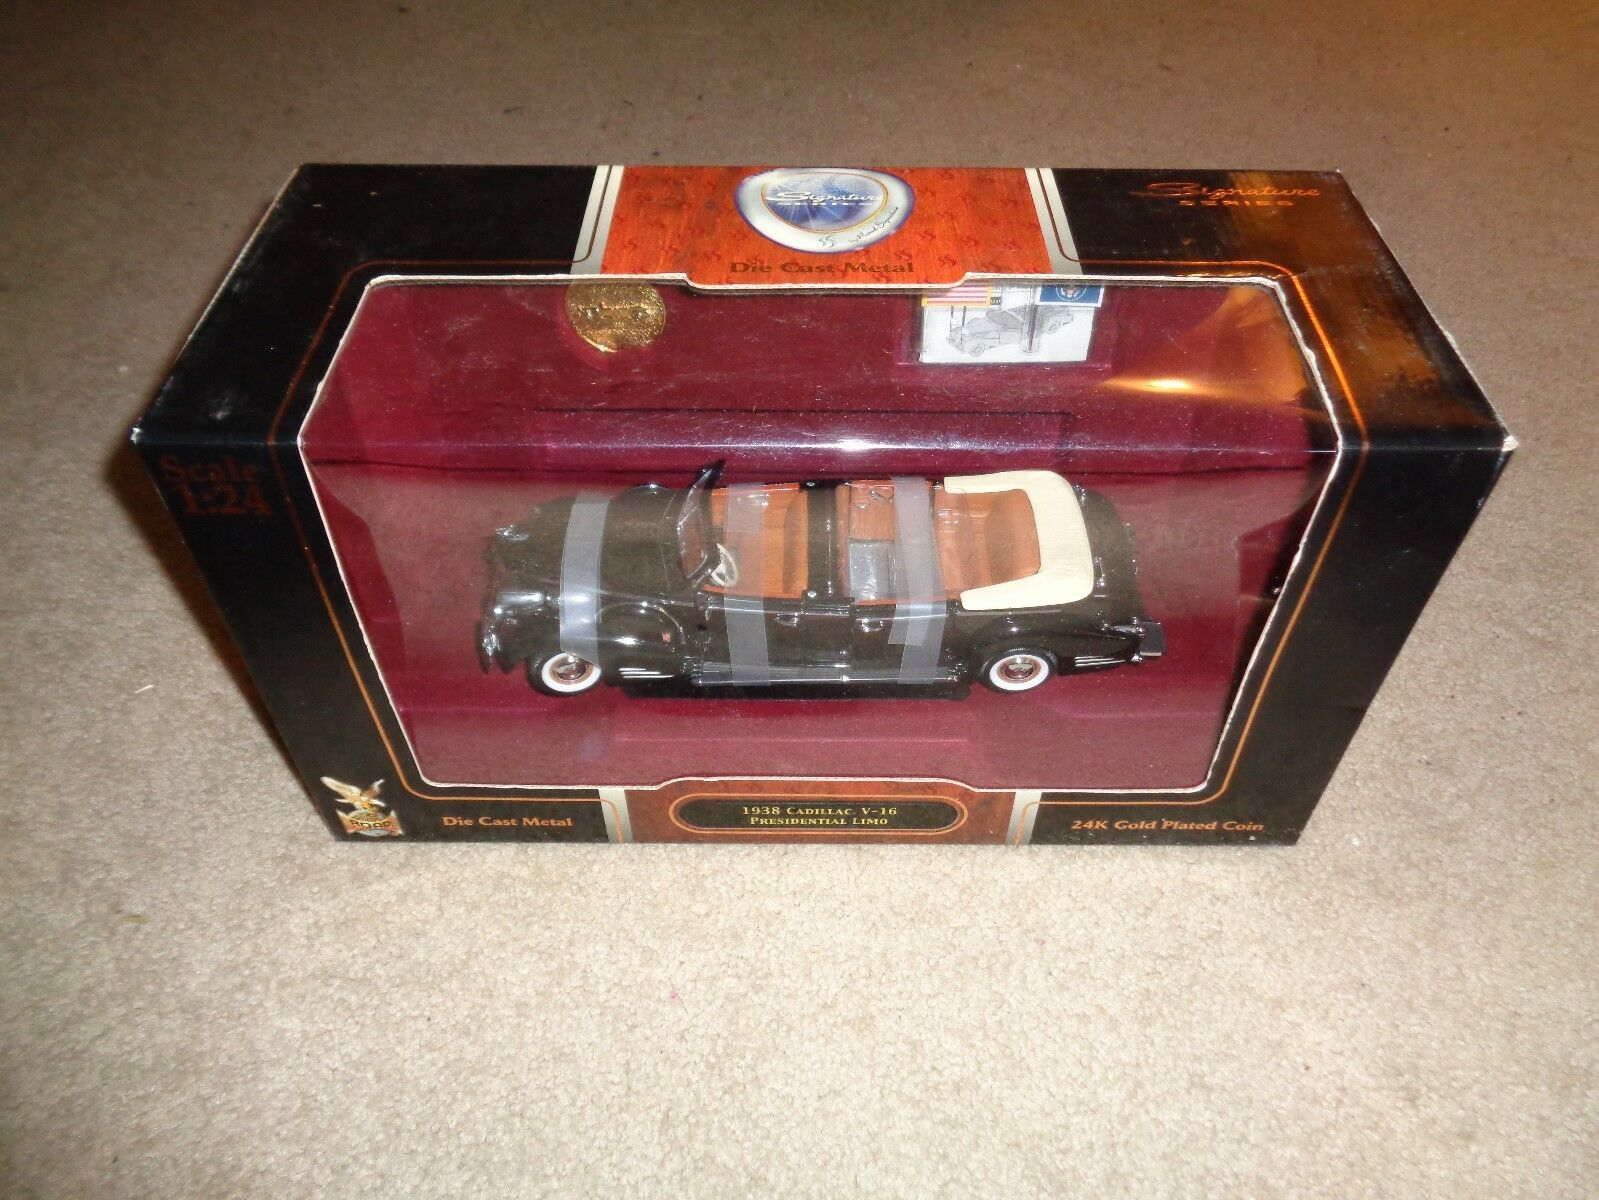 Road signature series diecast 1938 illac V-16 Presidential Limousine Comme neuf IN BOX 1 24